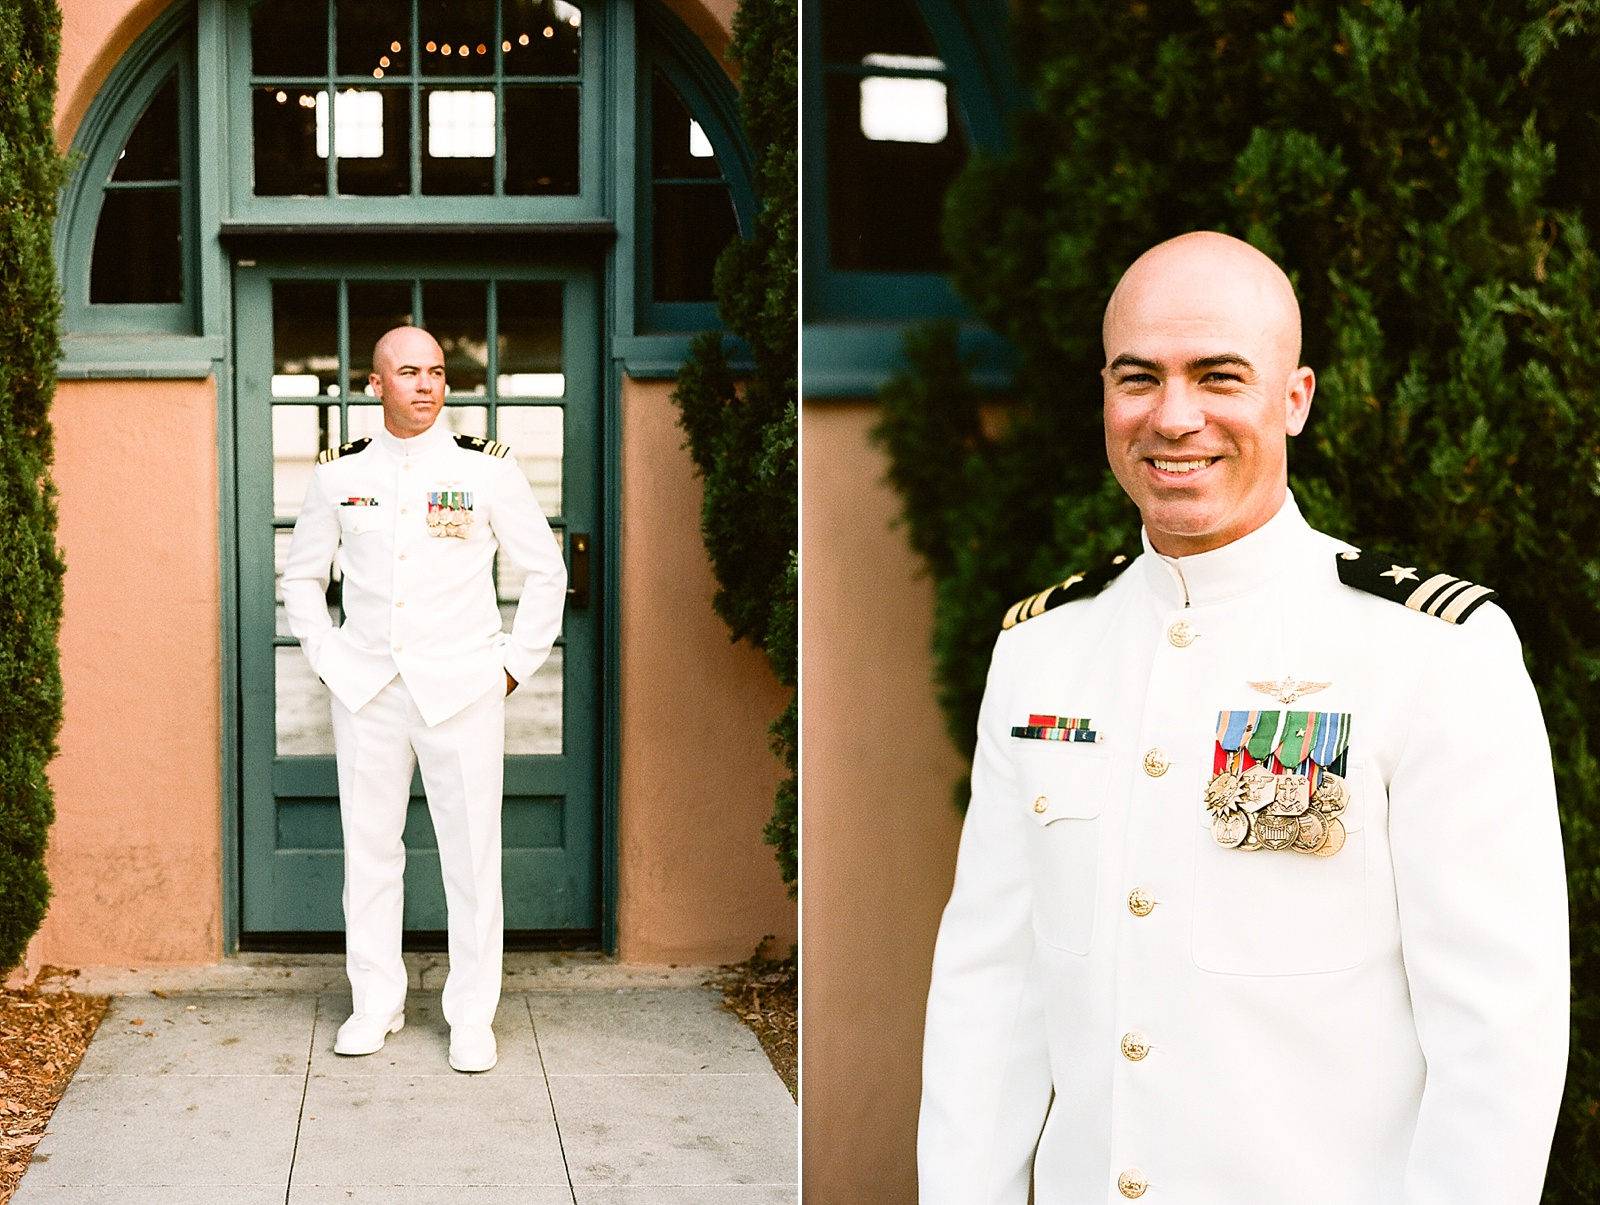 V&V Wedding at 828 by Lauren Nygard_film-026